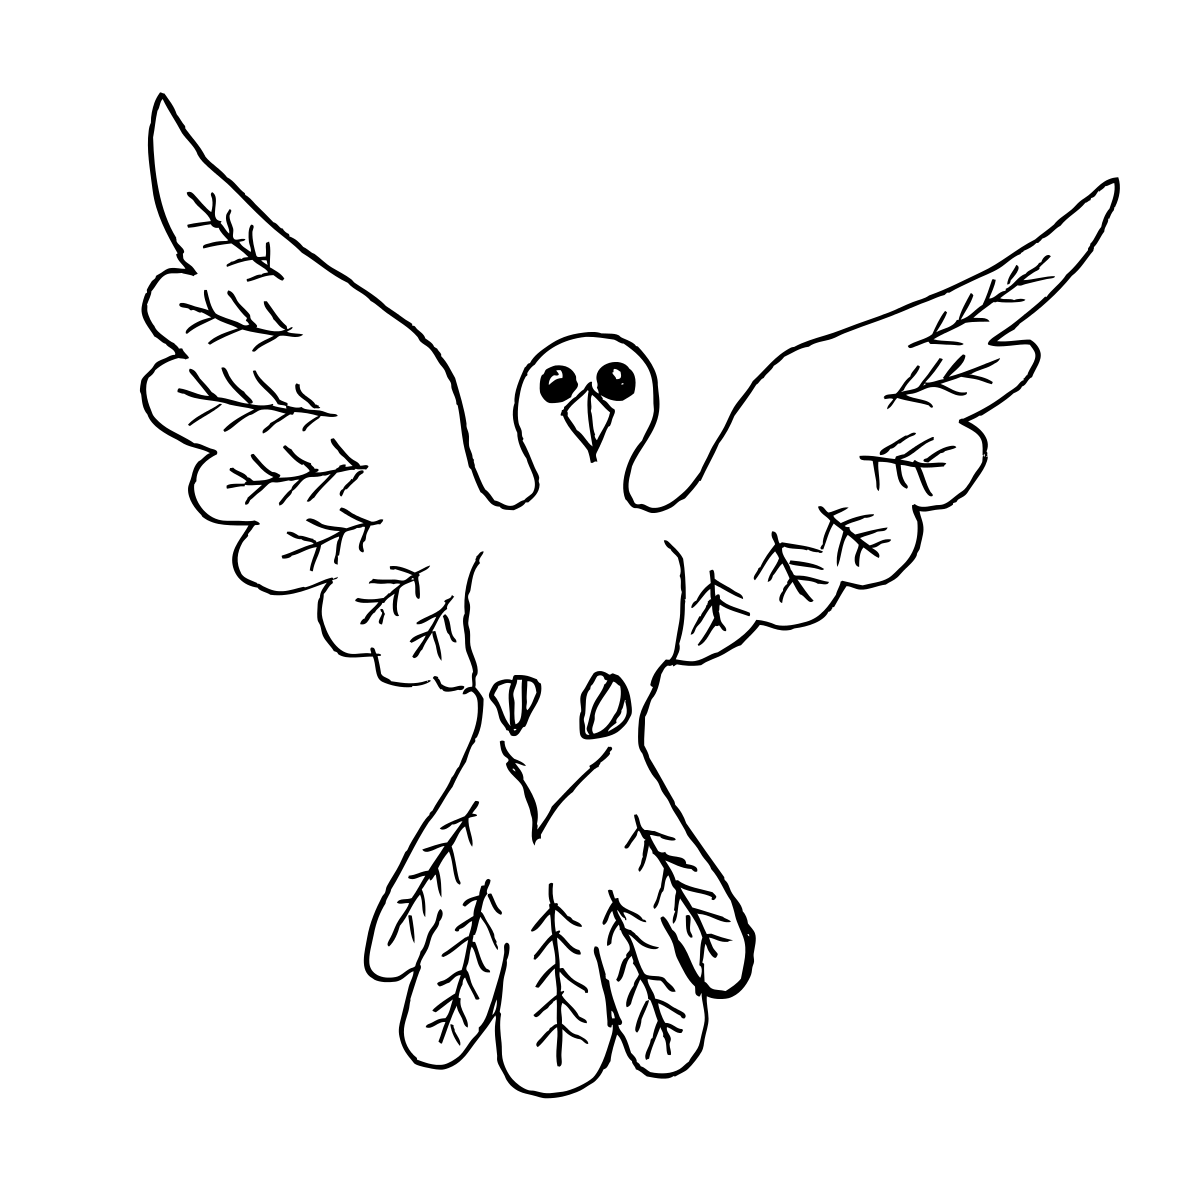 Dove Bird Outline Drawing Clipart By Konand Bird Cliparts